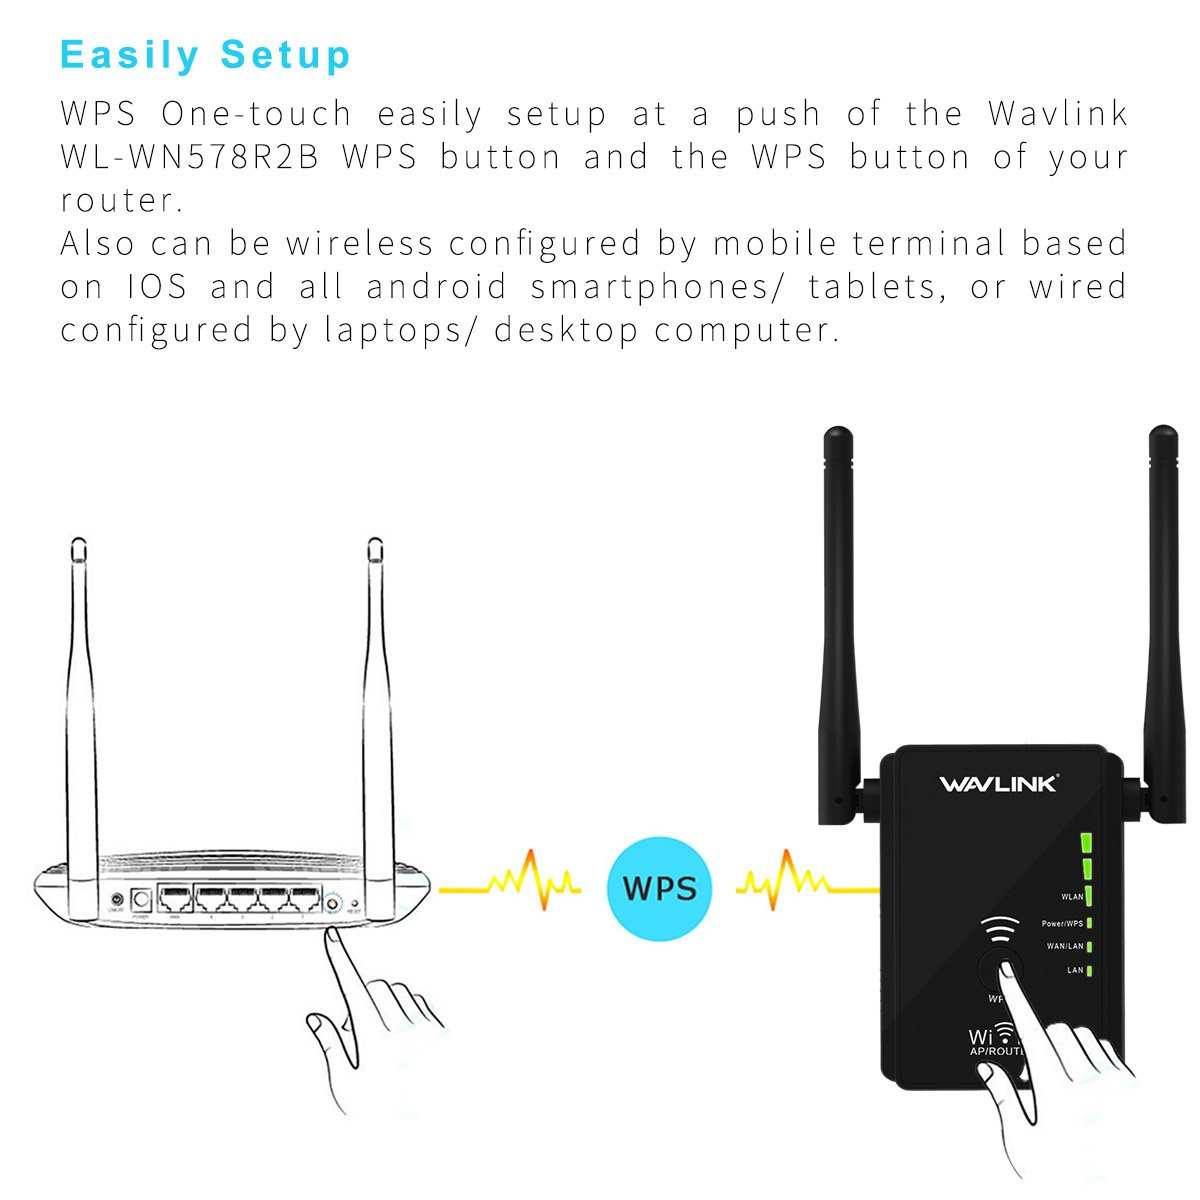 High Power 300Mbps WiFi Range Extender, WAVLINK High Power N300 Wireless WiFi Repeater Signal Booster/Access Point/Router 2 Ethernet Port/External Antenna by WAVLINK (Image #5)